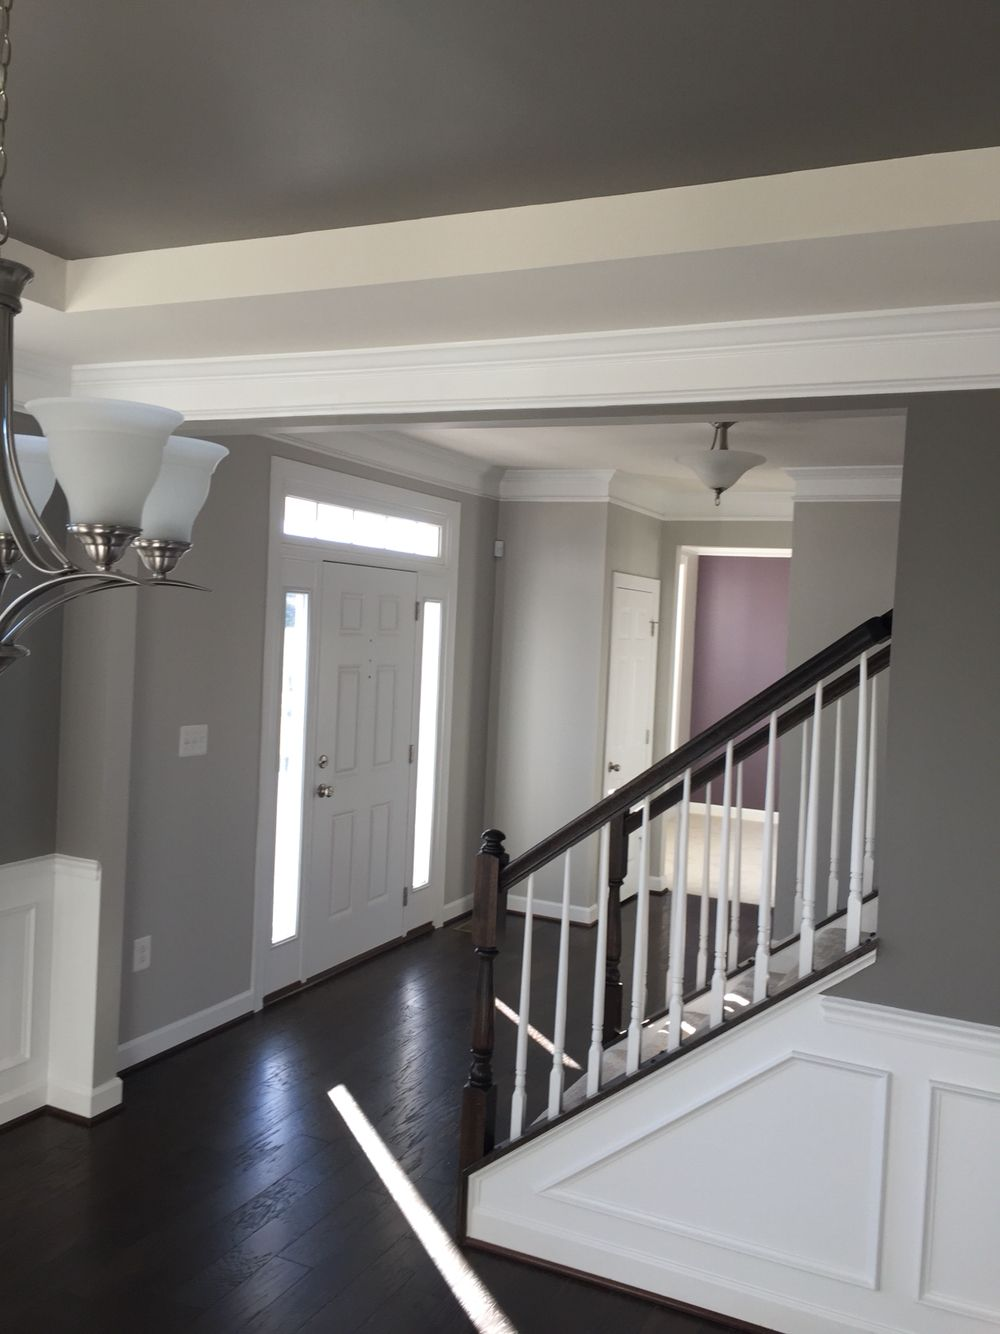 Shaw Flooring Bison Sherwin Williams Paint Repose Gray Entry Dovetail Dining Room Expressive Plum Accent Wall